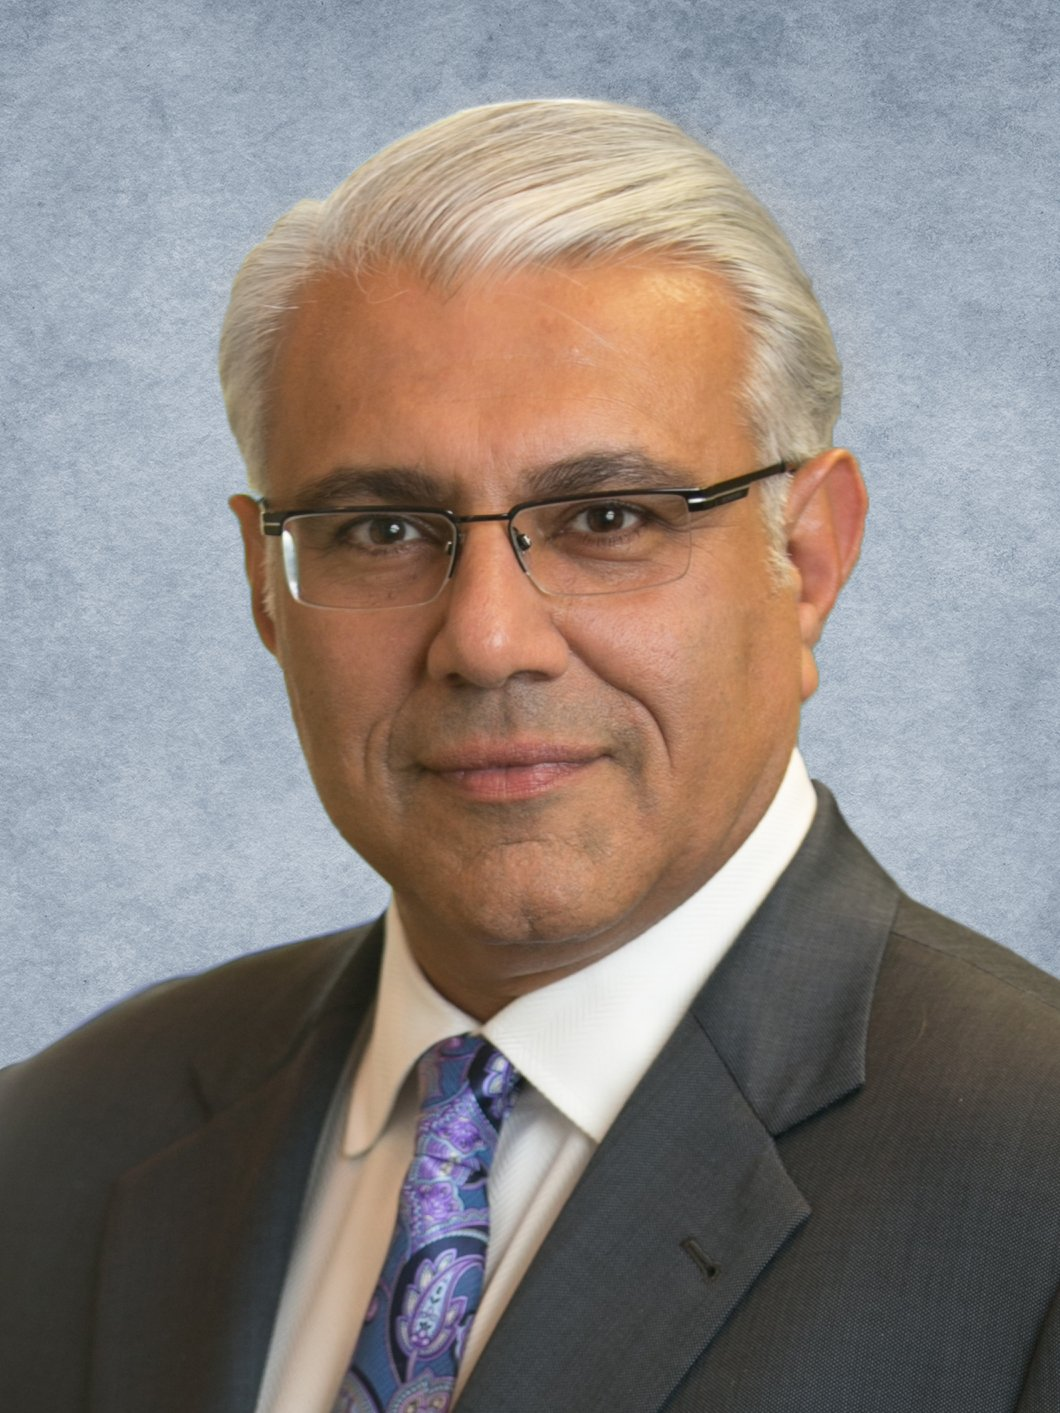 Hessam Nadji is President and Chief Executive Officer of Marcus & Millichap